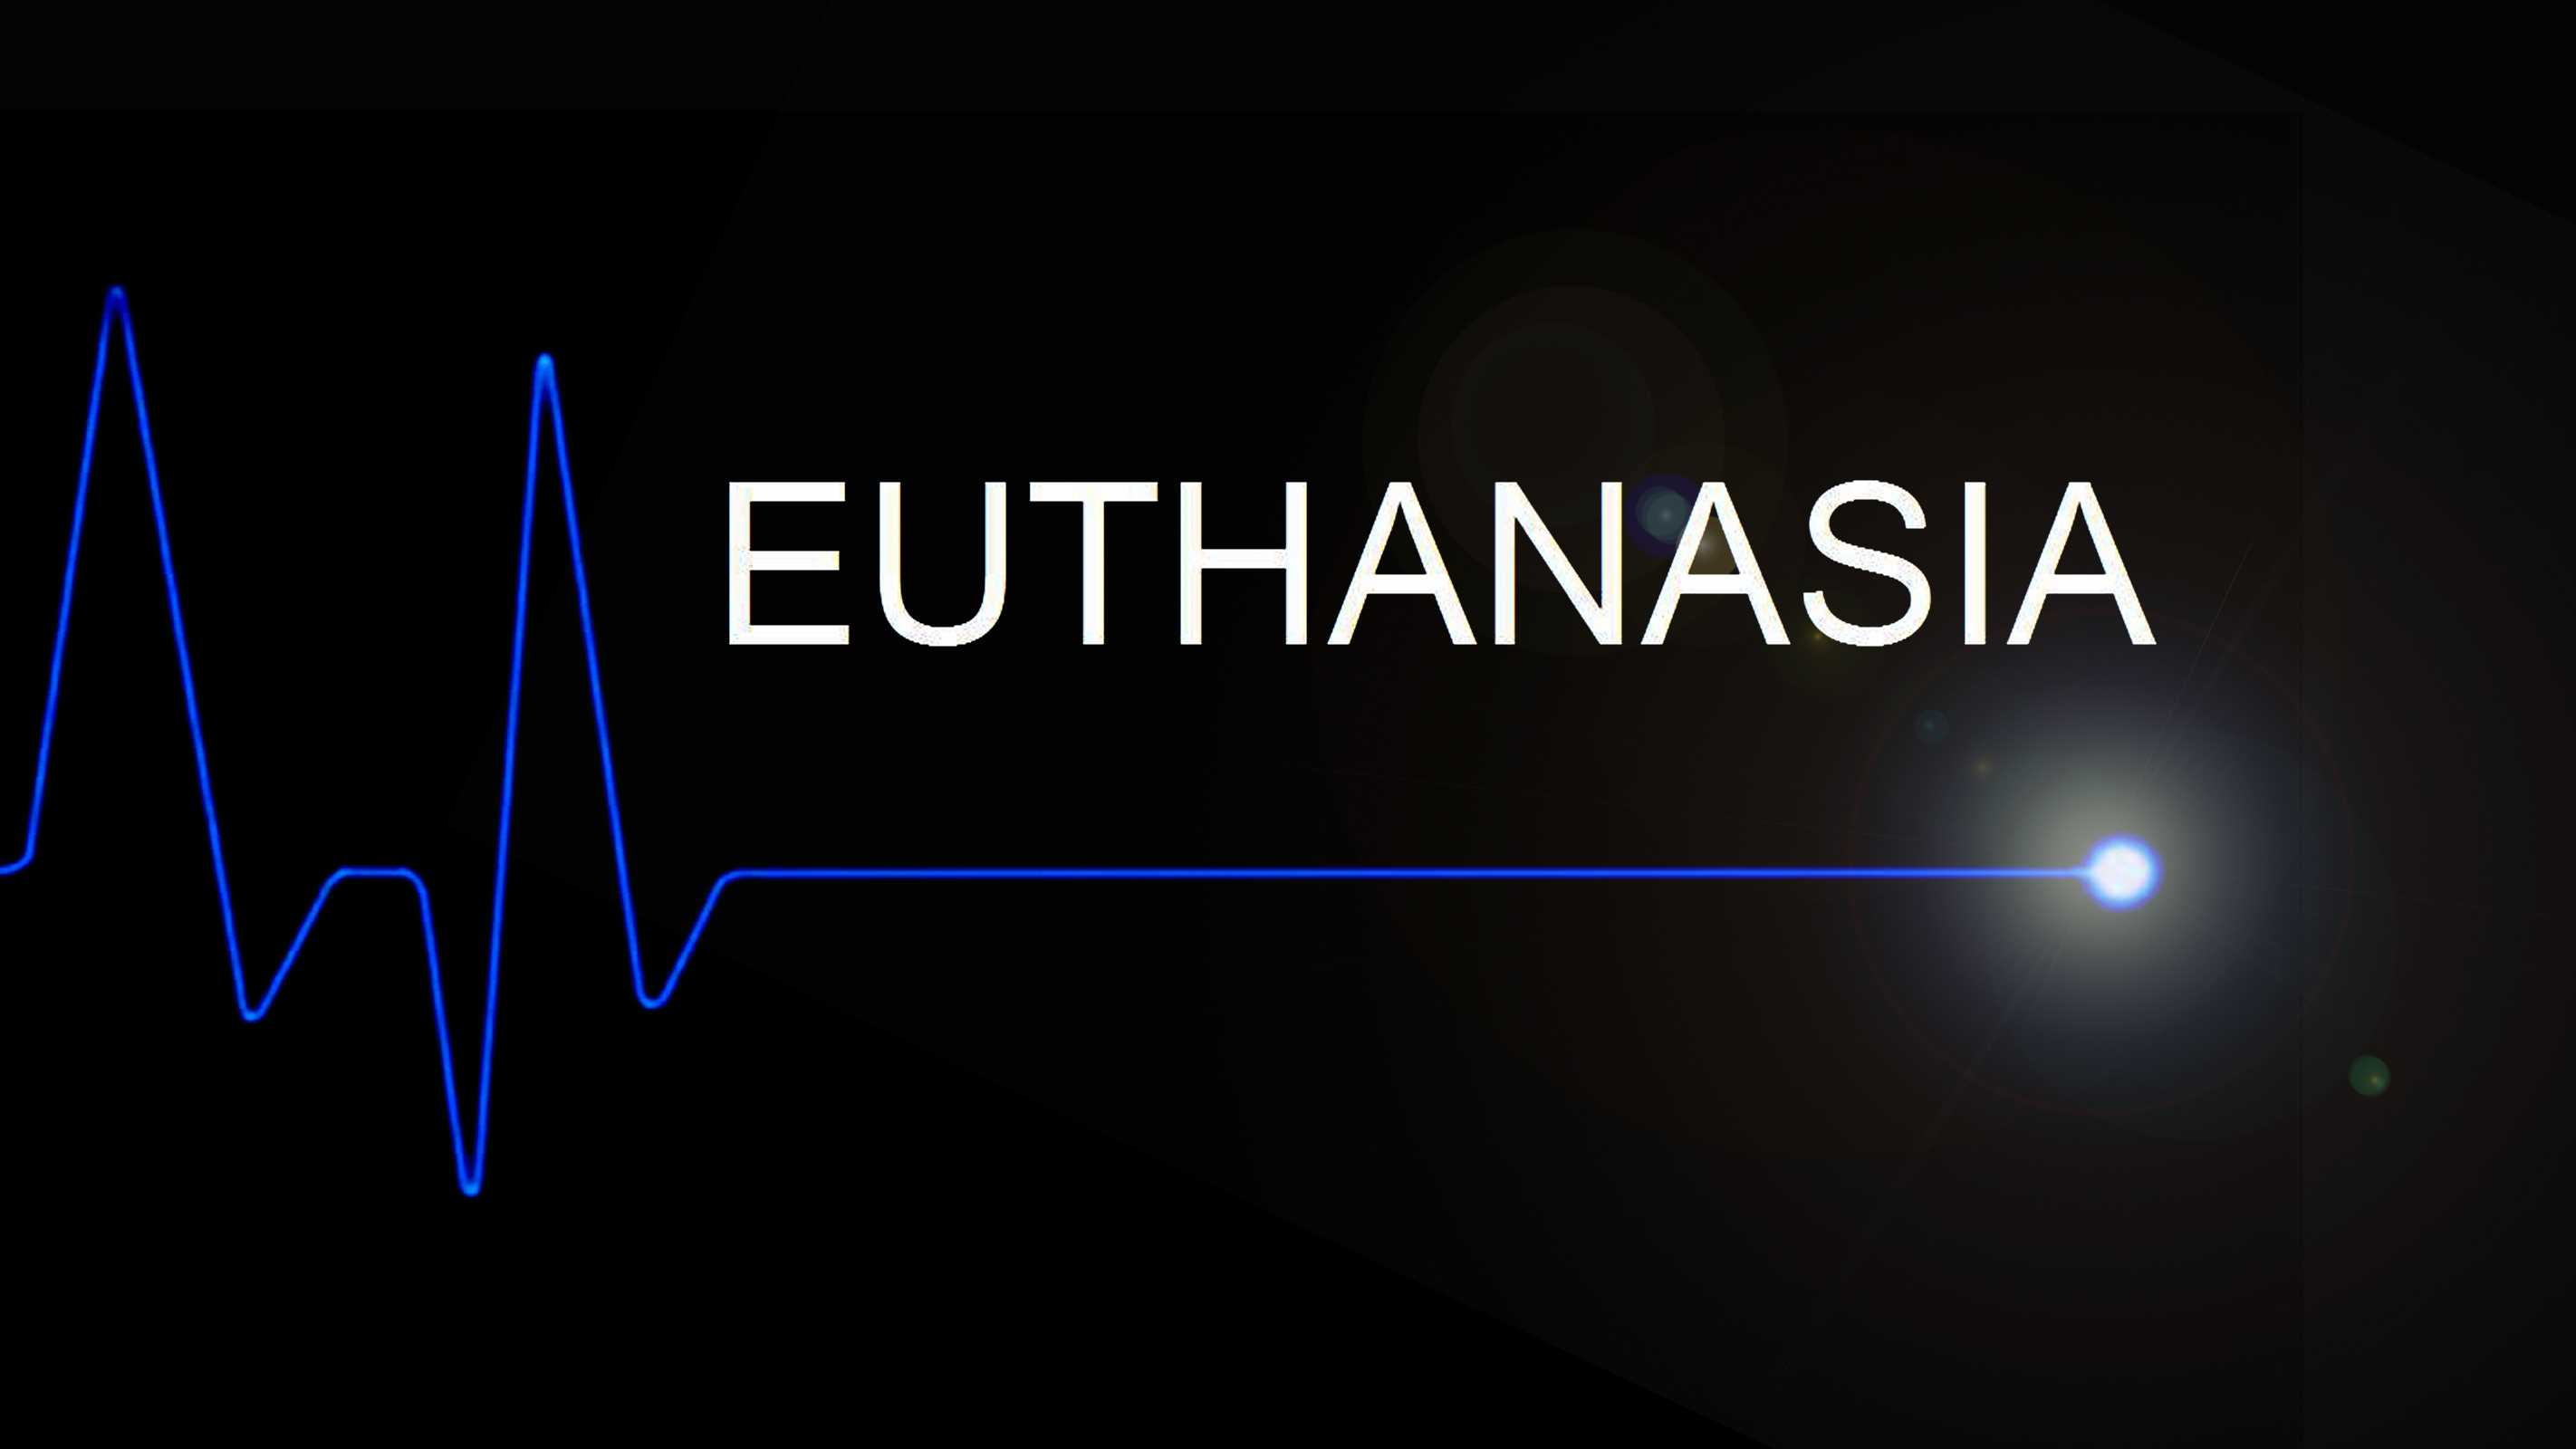 pro legalization of euthanasia essay Free essay on euthanasia pros and cons available totally free at echeatcom in 1935 the first group that was for the legalization of euthanasia was formed.